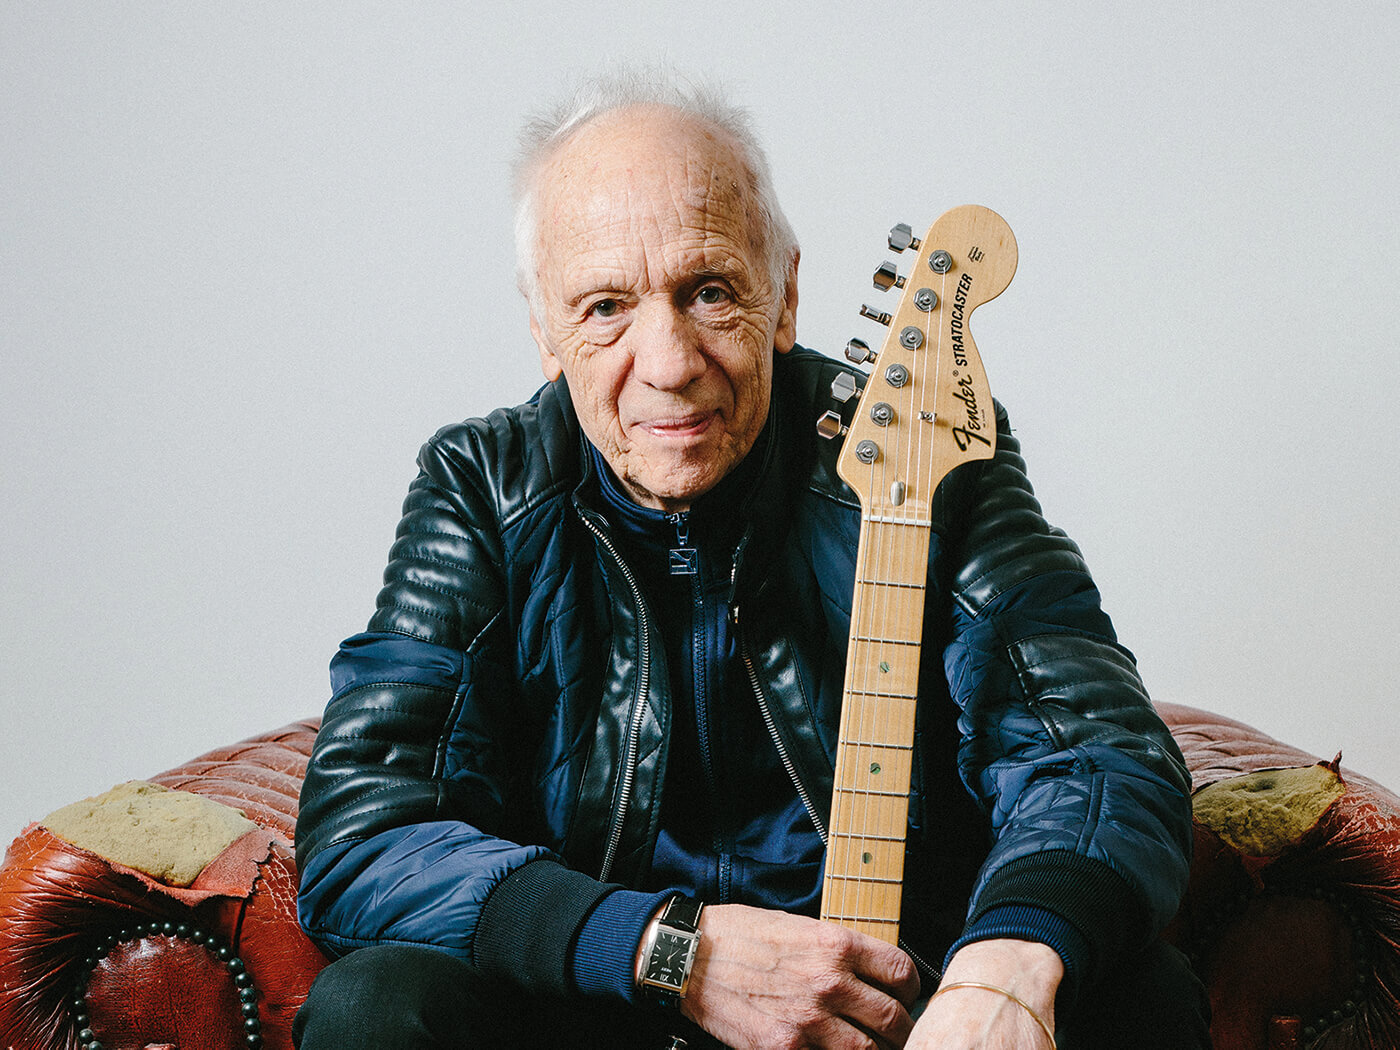 Interview: Robin Trower, formerly of Procol Harum